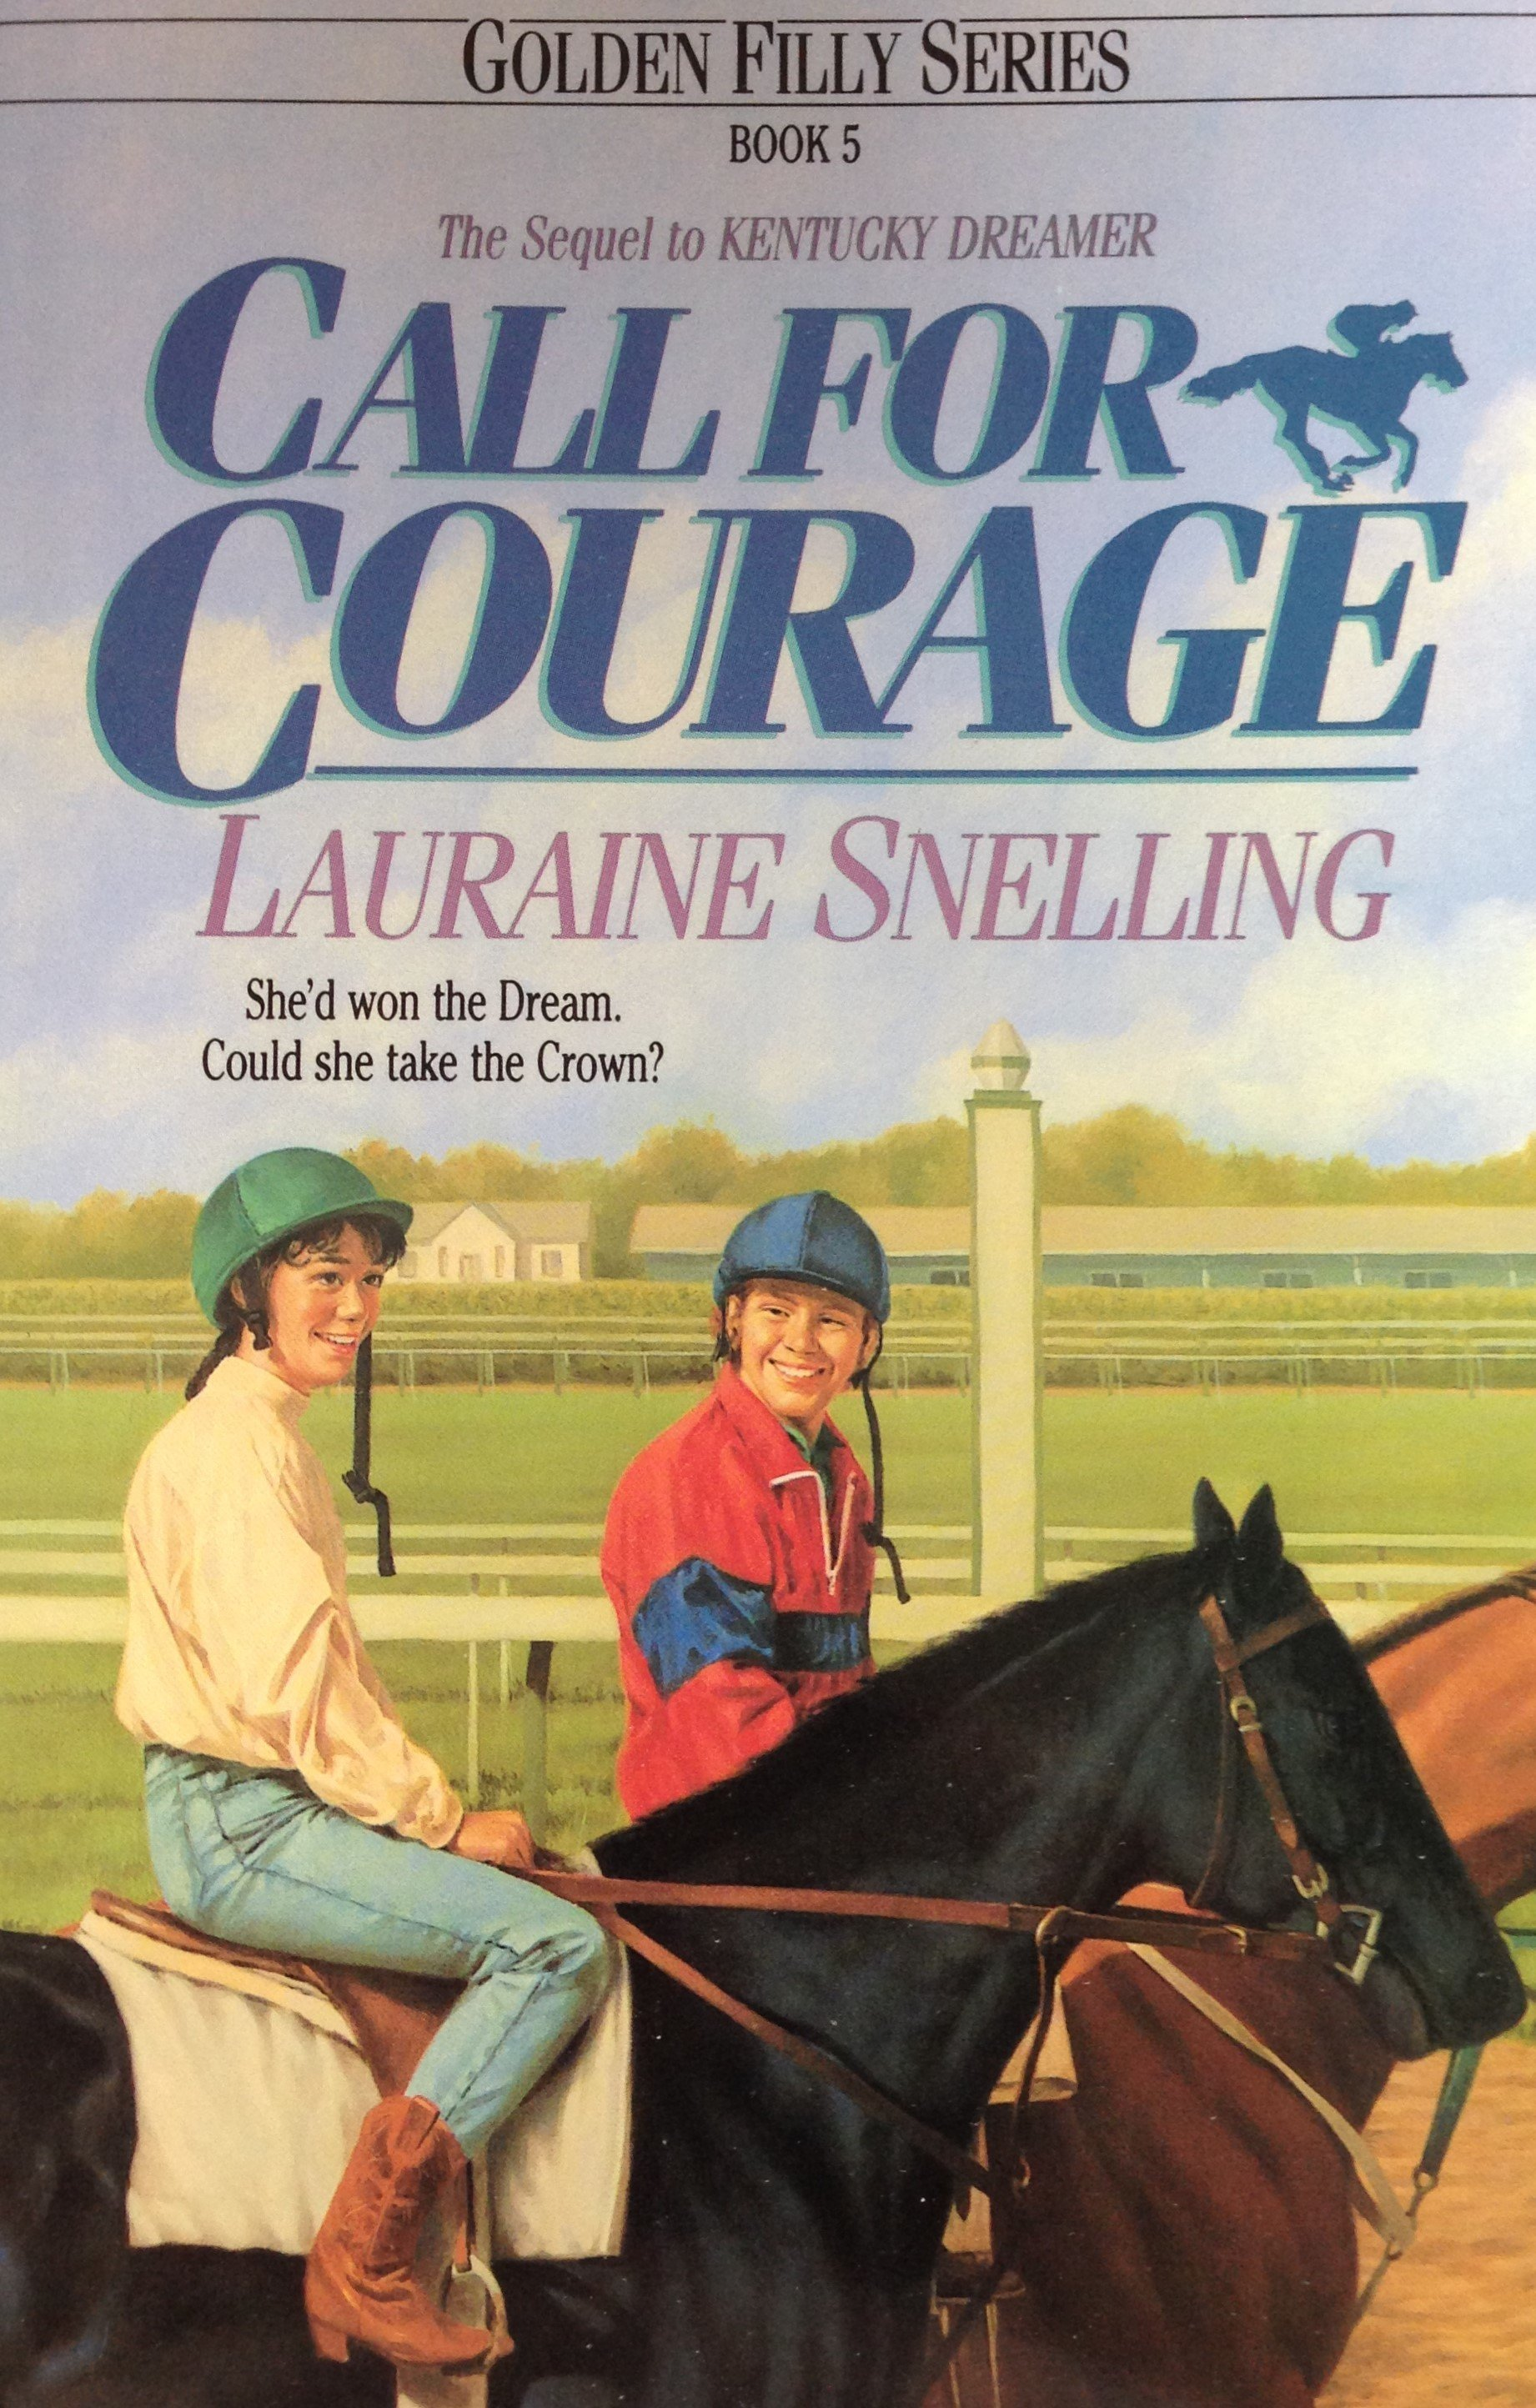 Call For Courage:  Golden Filly Series Book 5 by Lauraine Snelling 00119